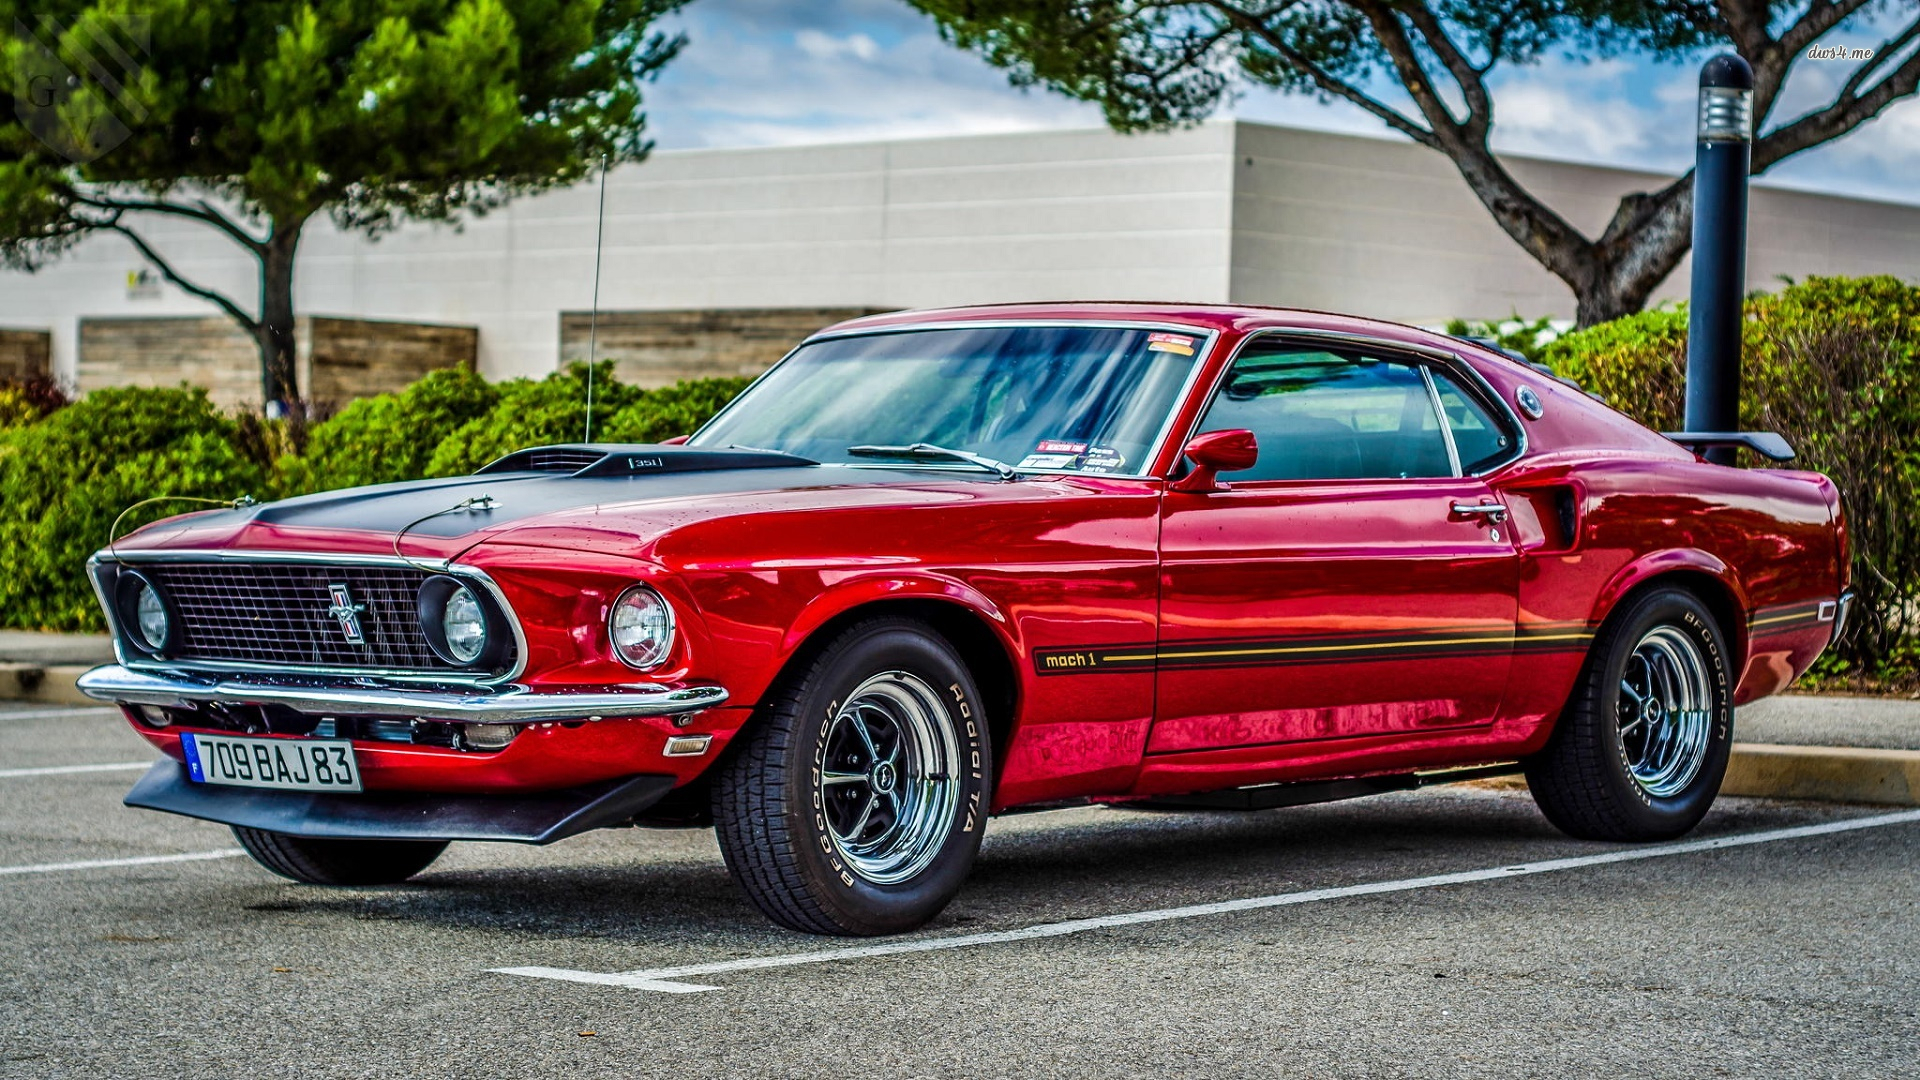 Ford mustang mach 1 · muscle car · red car · wallpapers id934445